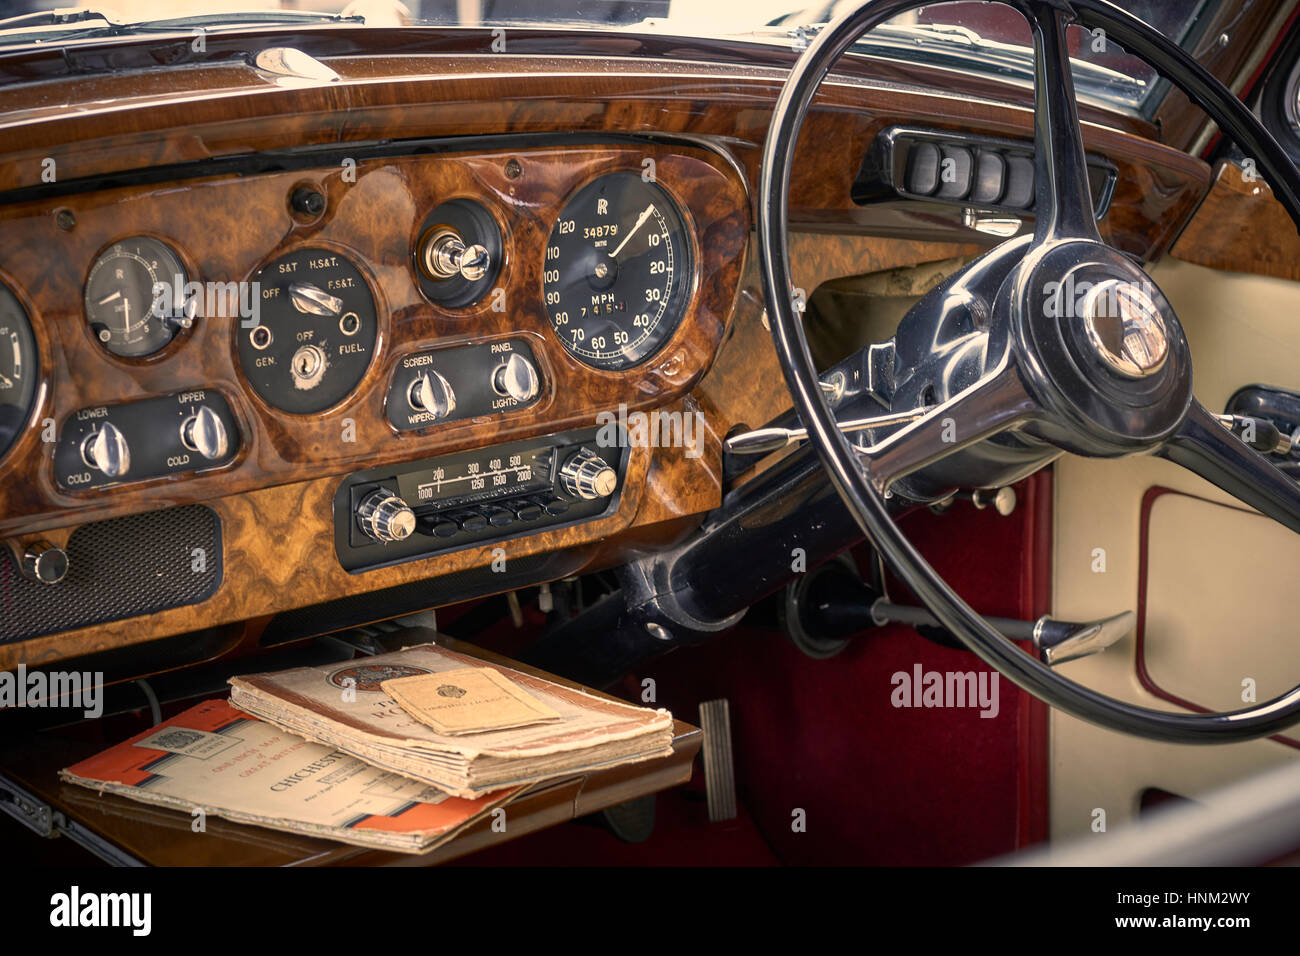 Vintage car dashboard with walnut and chrome - Stock Image